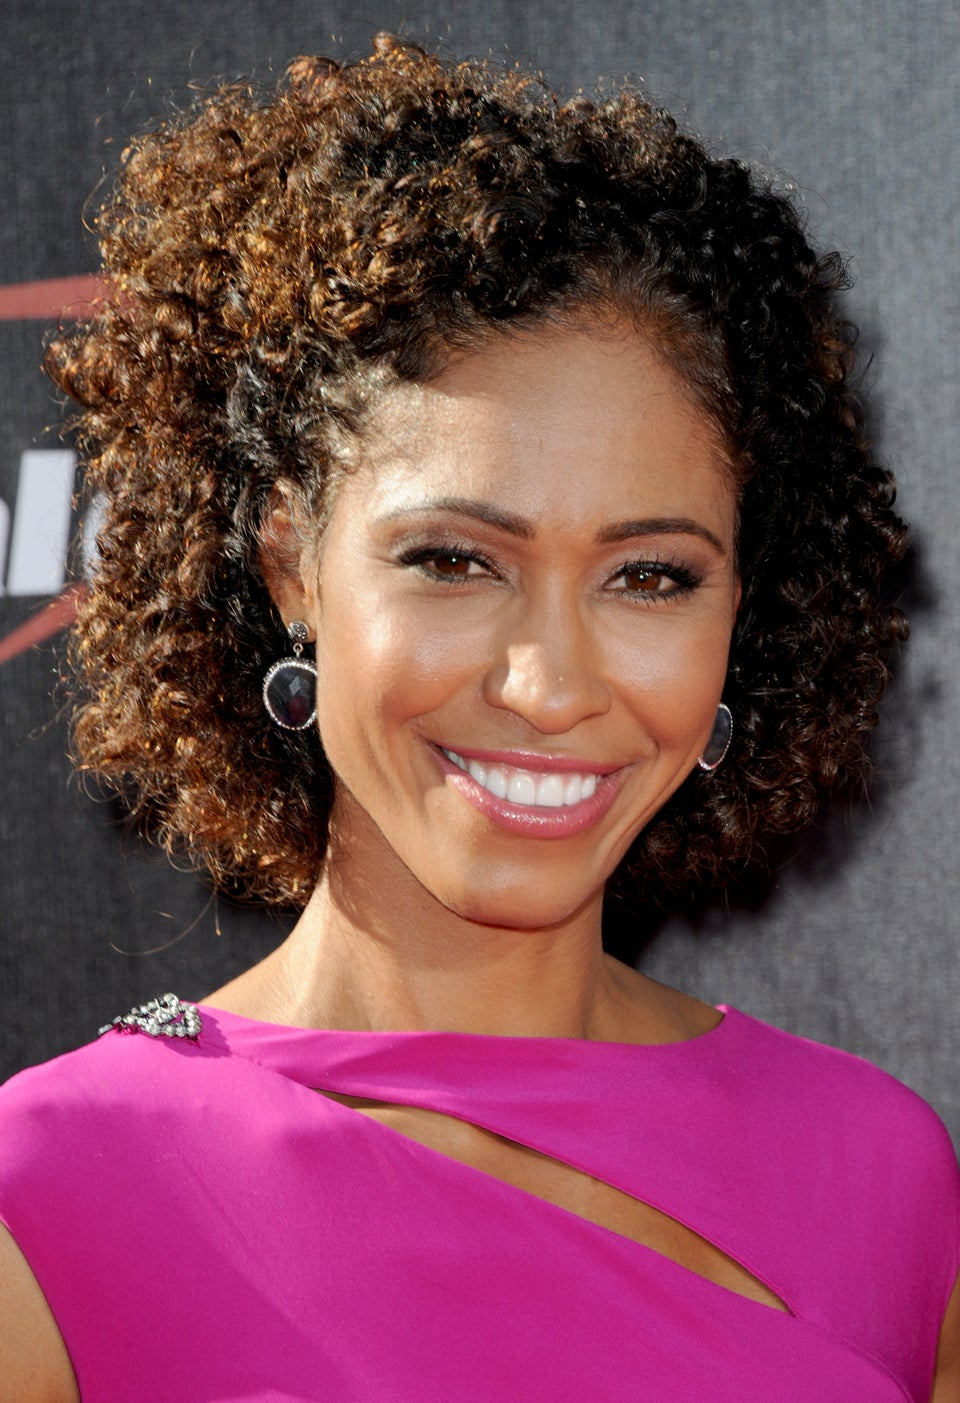 The Movement For Civil Liberties Is An Inconvenience To Sage Steele